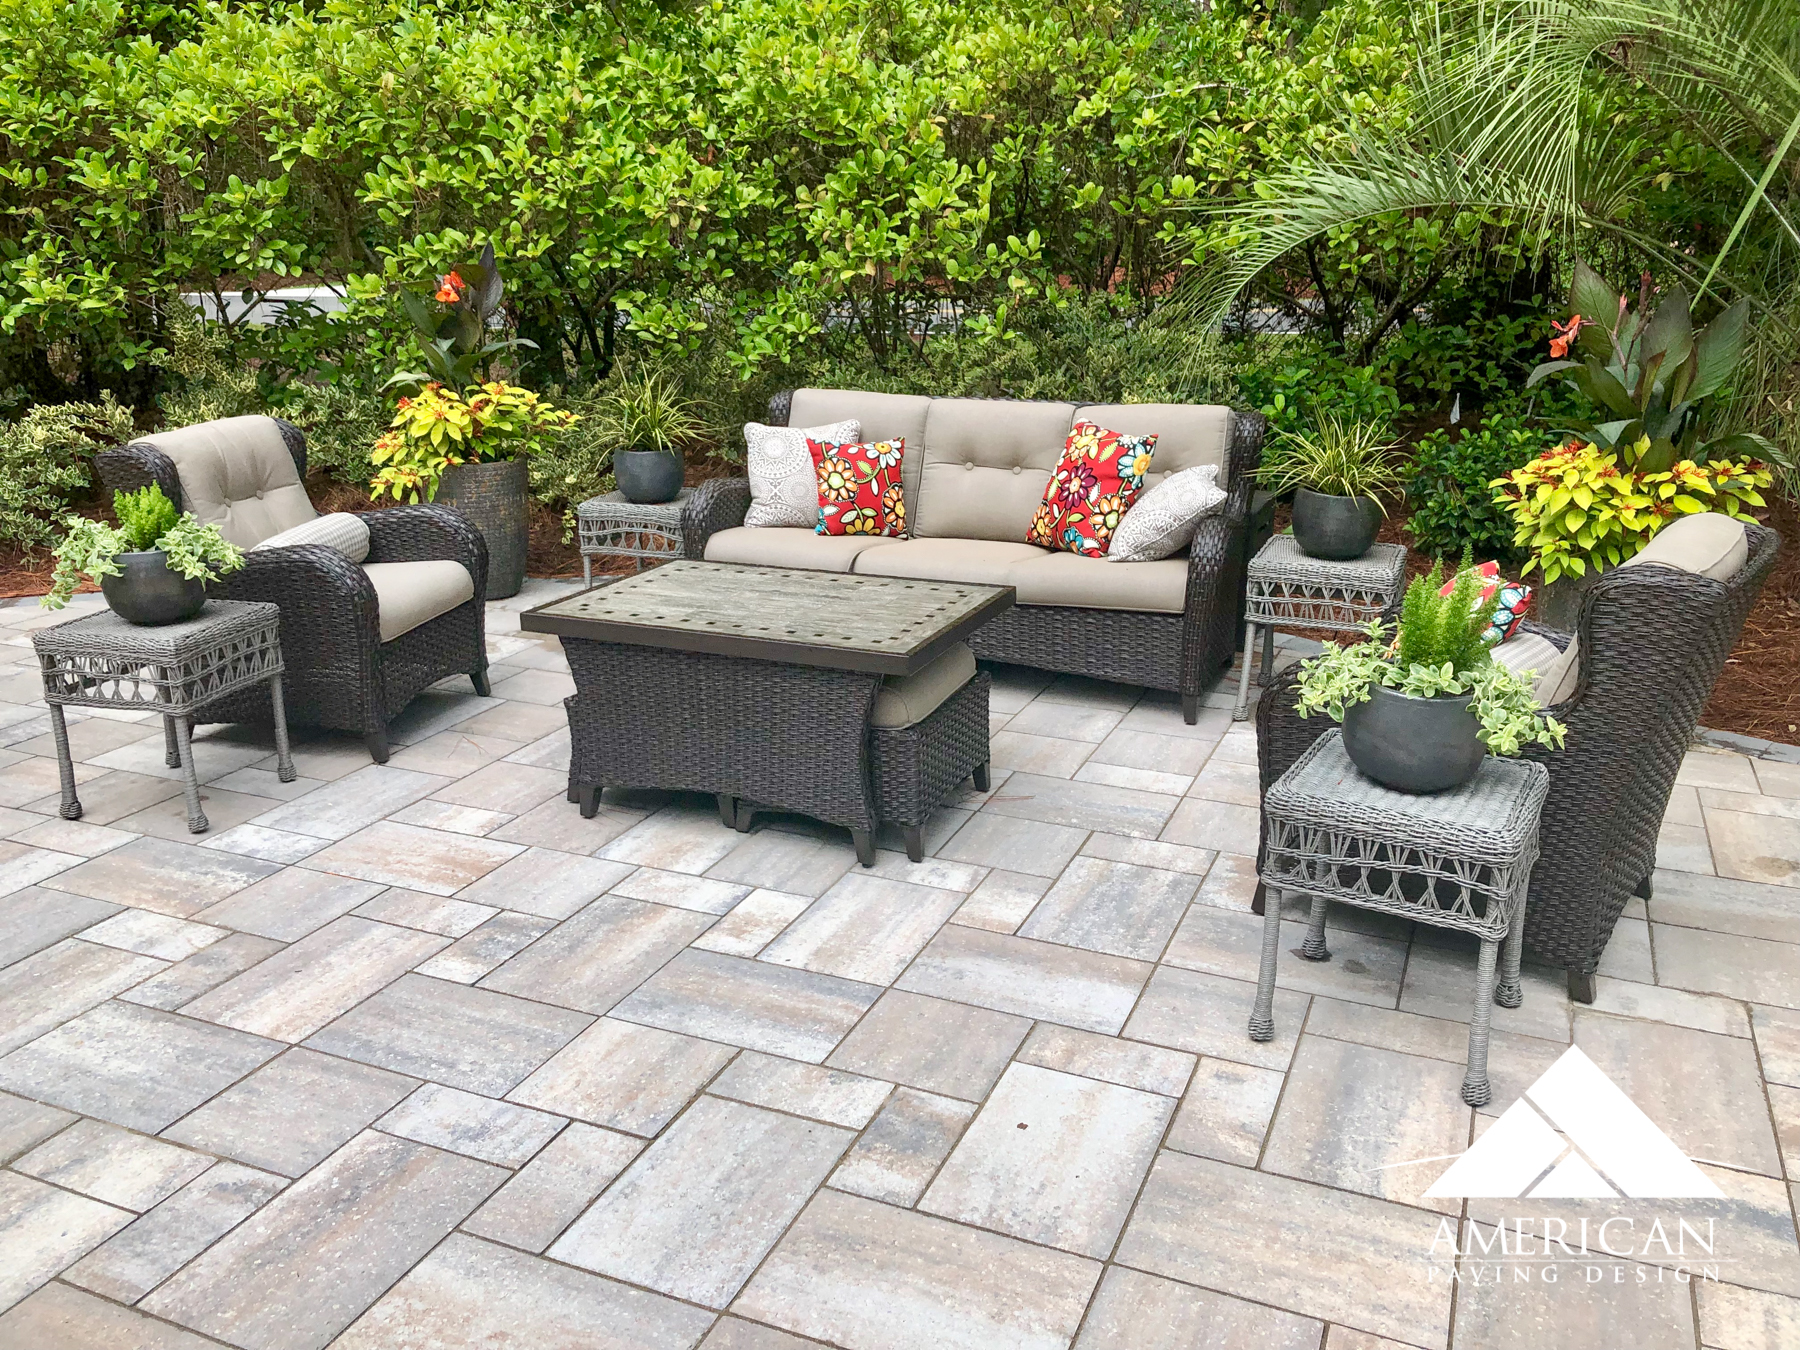 Textured pavers are perfect for making that small patio feel larger! These unique paving stones are not only cool in style but perfect natural color tones!